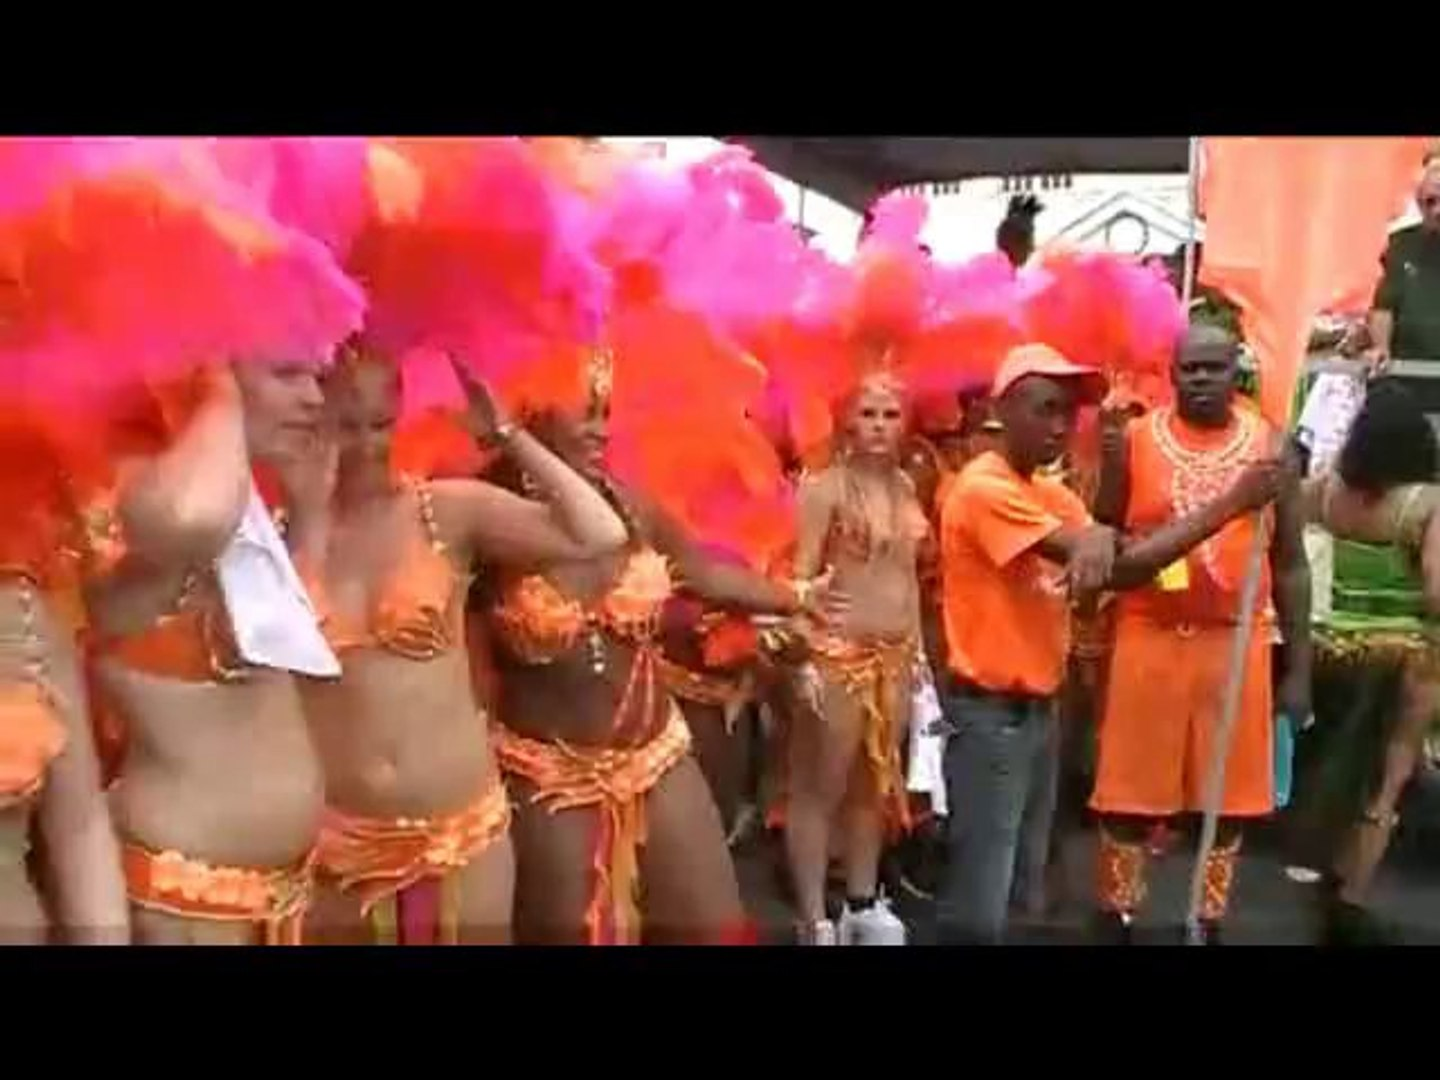 Soca Bhangra Chutney Wine Carnival Song-Pump Up The Bhangra